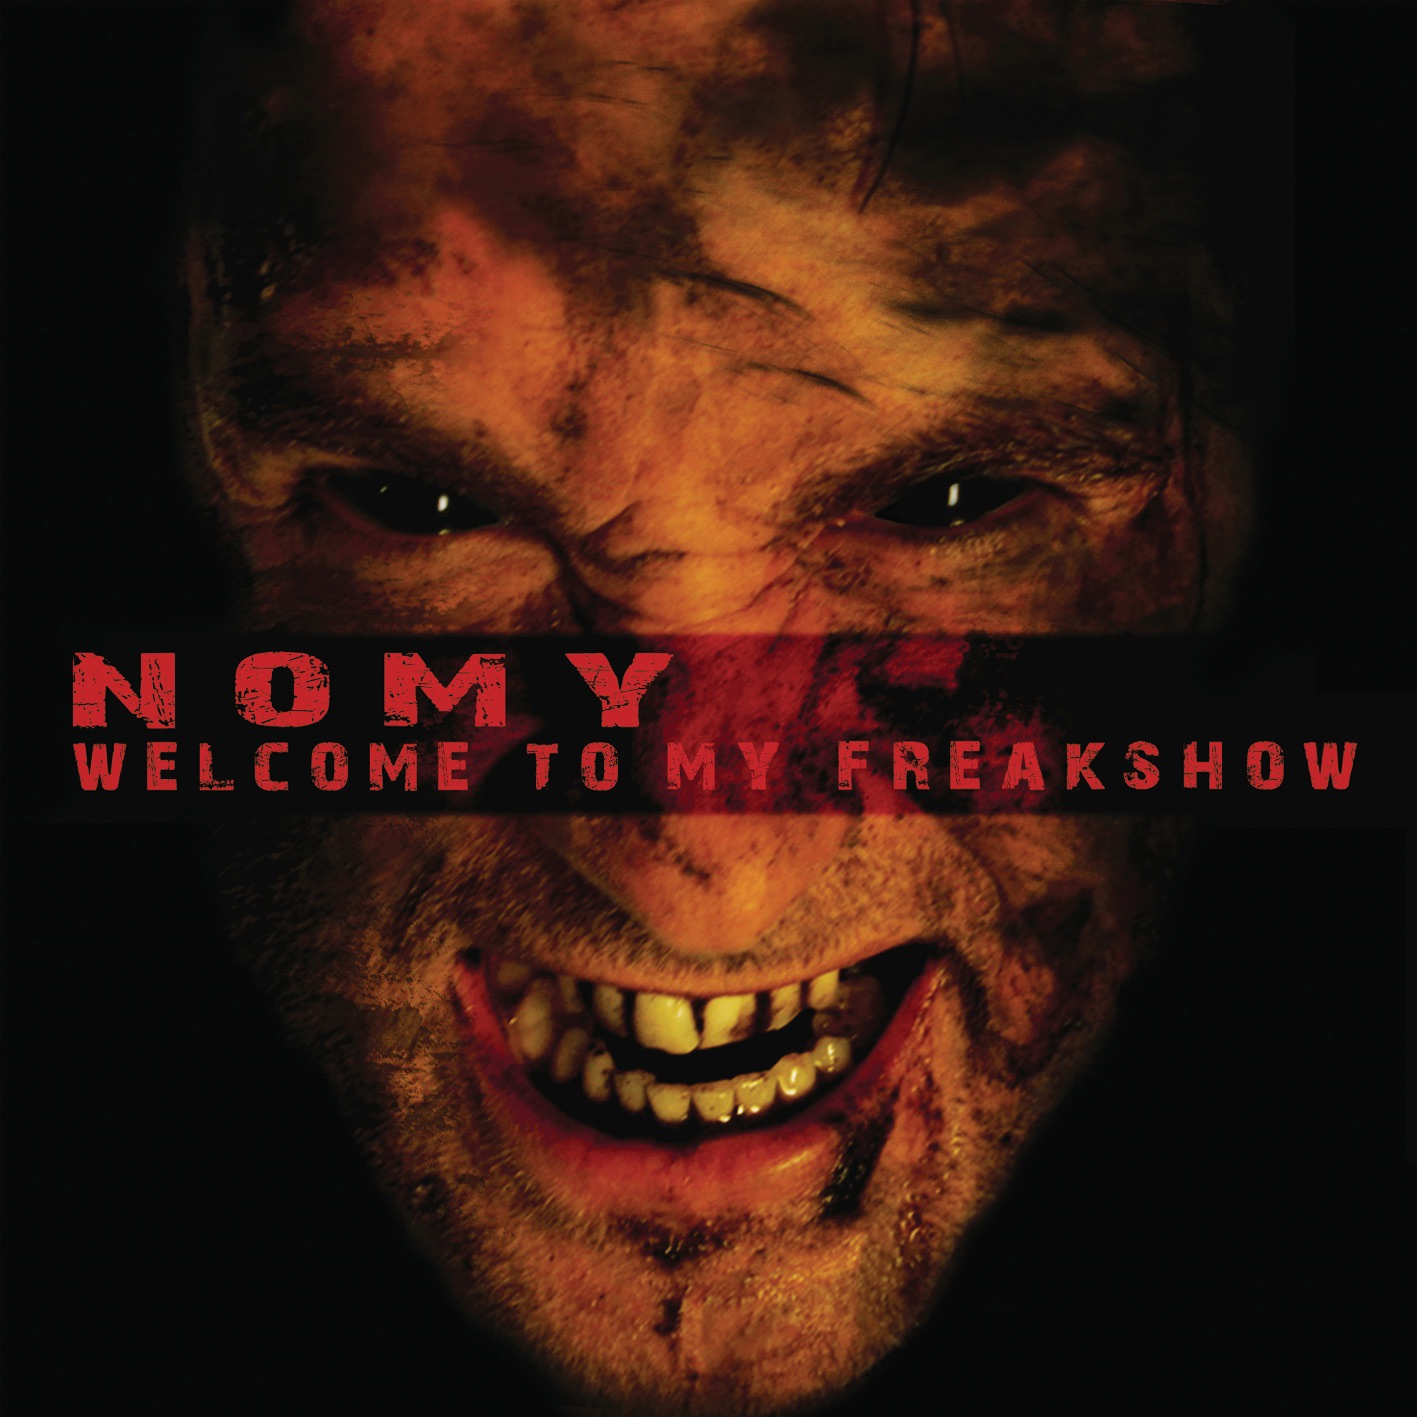 Nomy album Welcome to my freakshow